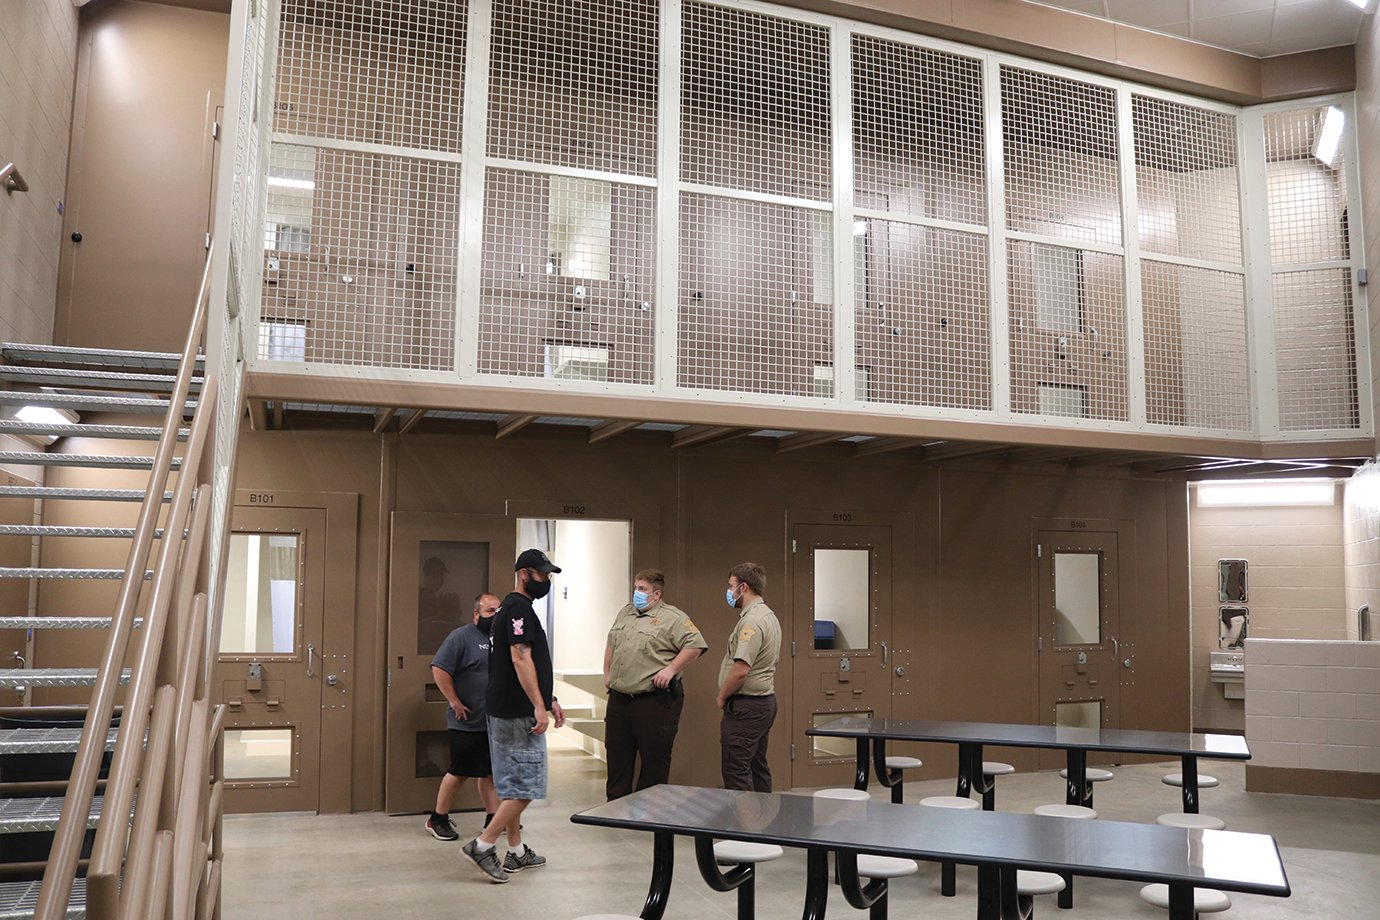 Fountain County Jail staff give tours of the new facility on Sunday during a four-hour open house ahead of a July 6 grand opening.